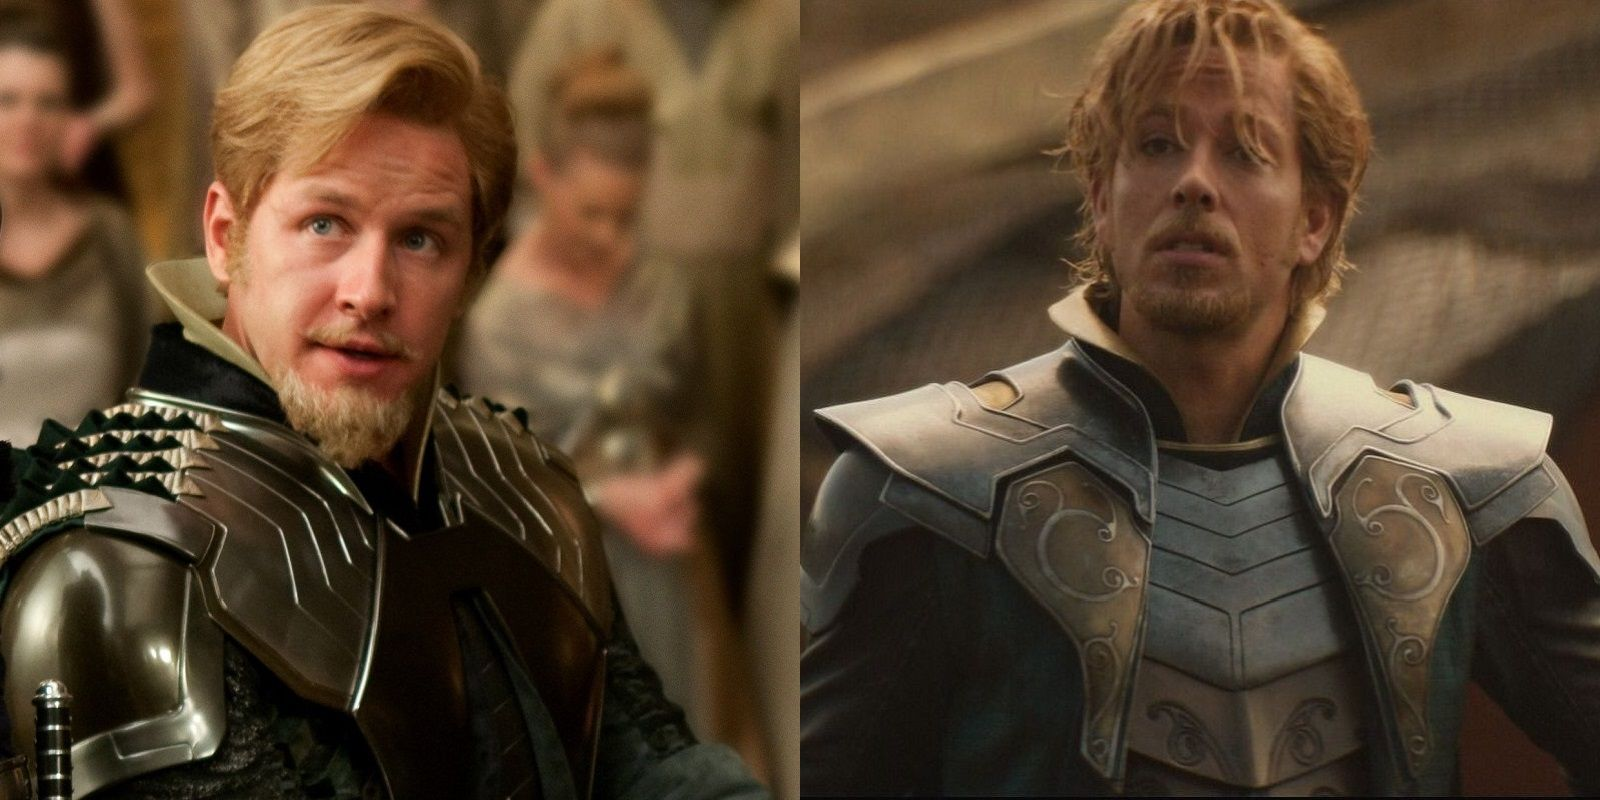 Fandral The Dashing Thor 2 12 Actors Who Were Rec...